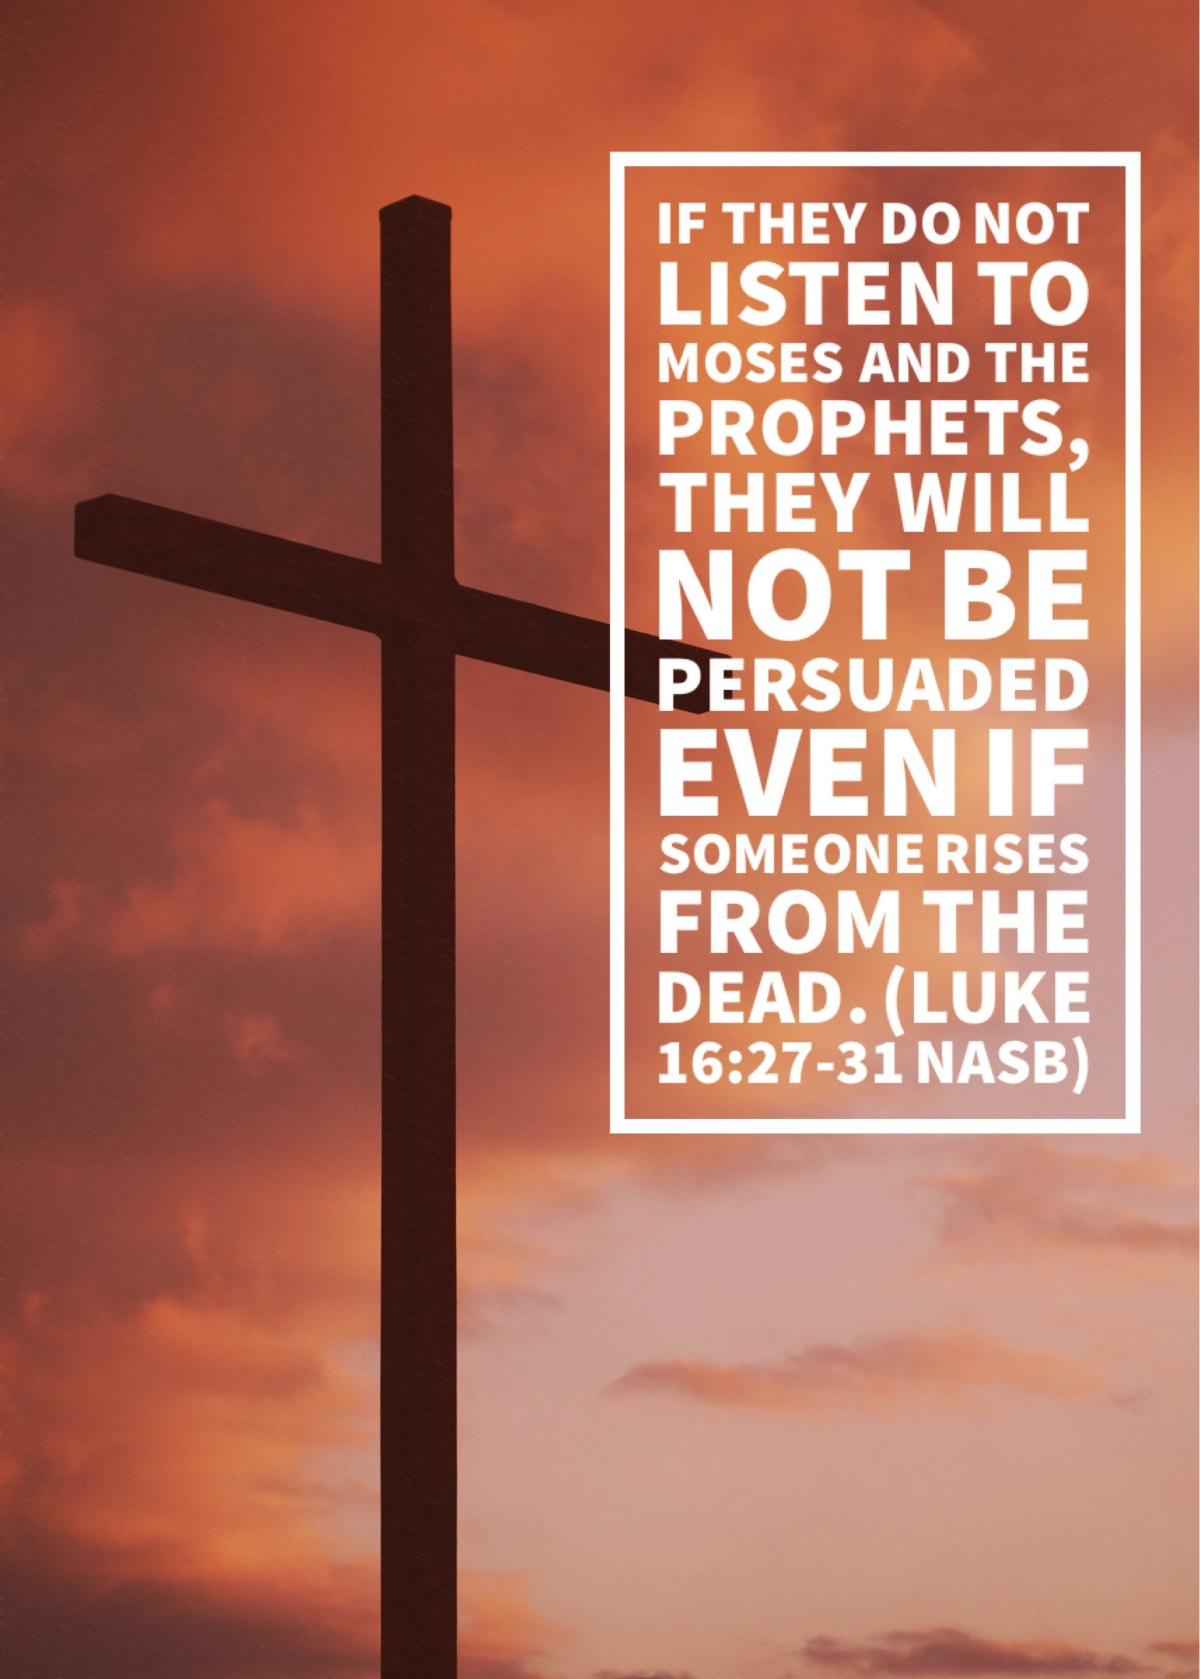 They will not be persuaded even if someone rises from the dead.